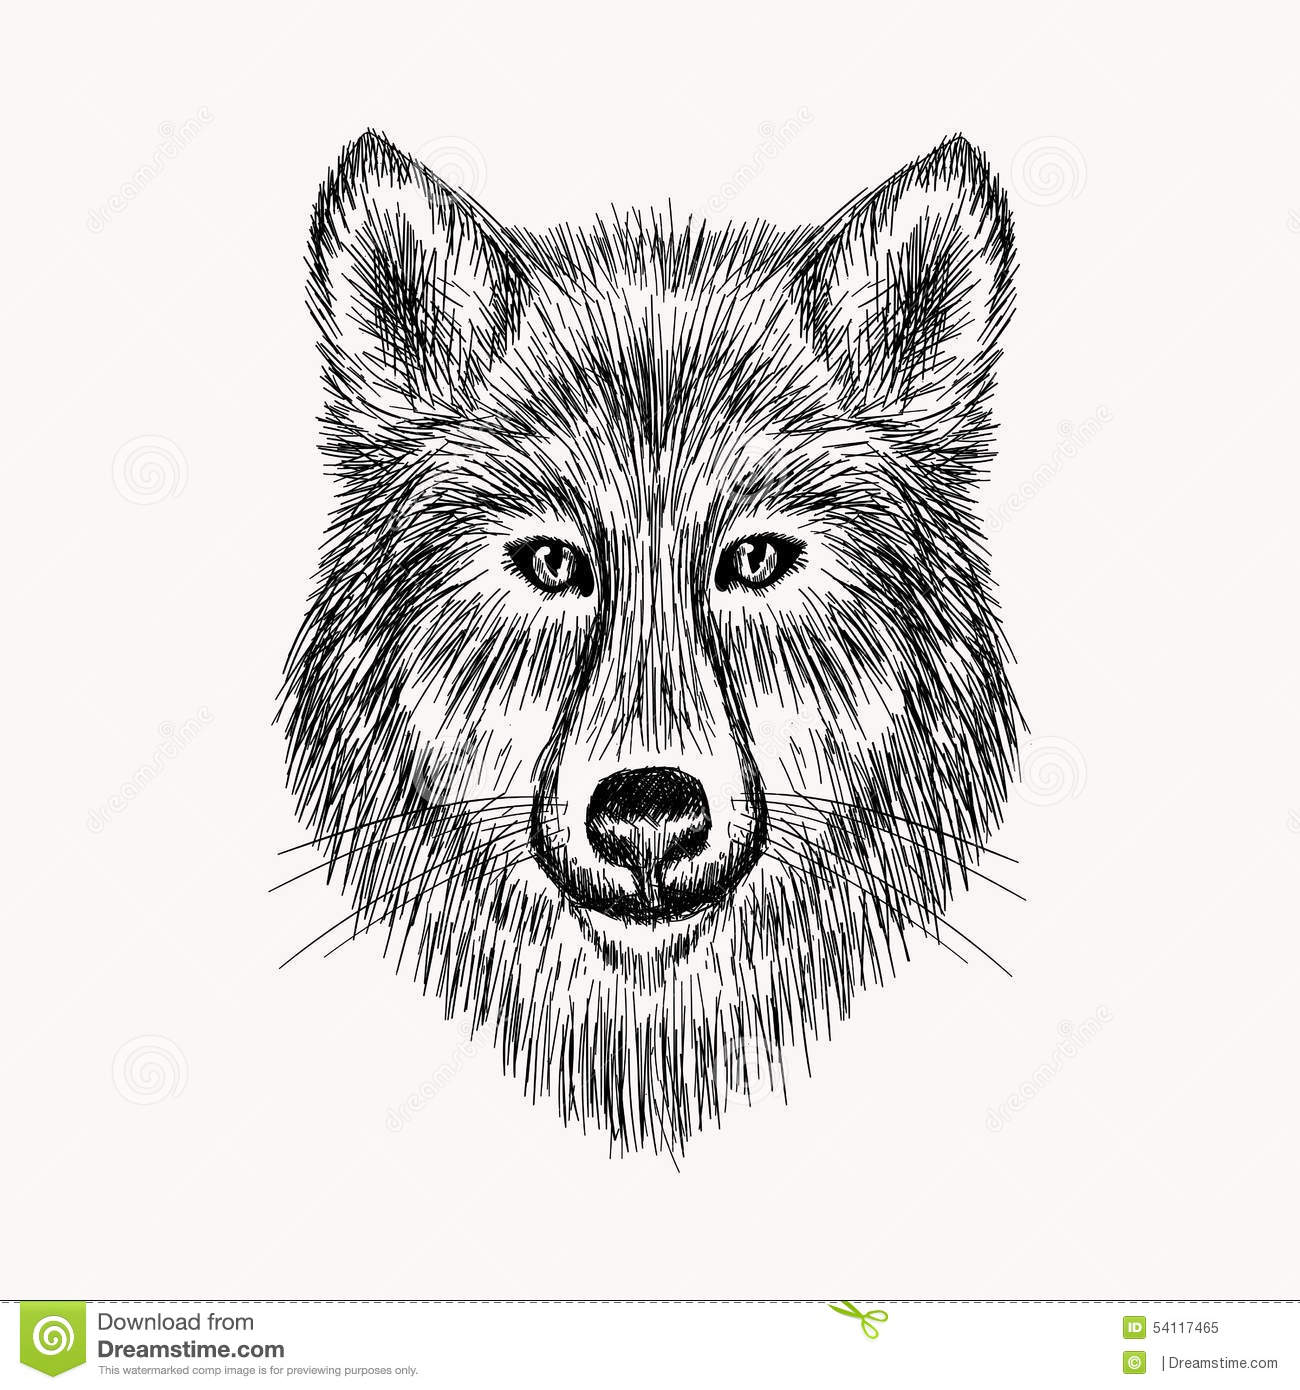 Sketch Realistic Face Wolf Hand Drawn Illustration Stock